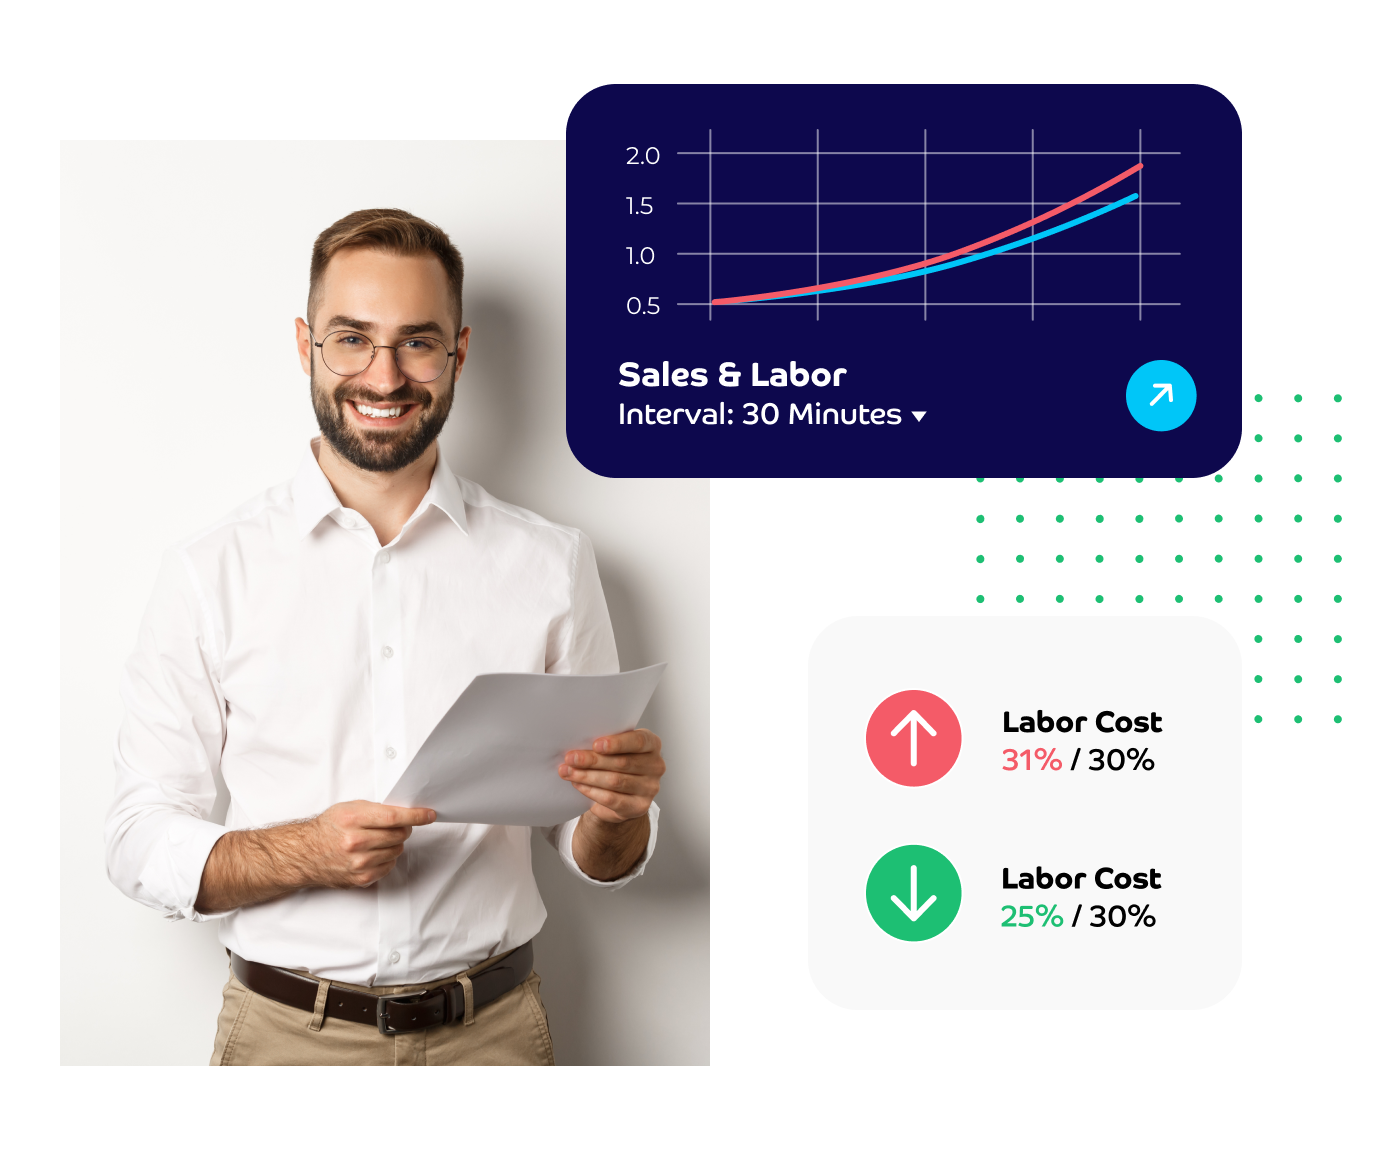 Push reports and insights helps you with labor costs